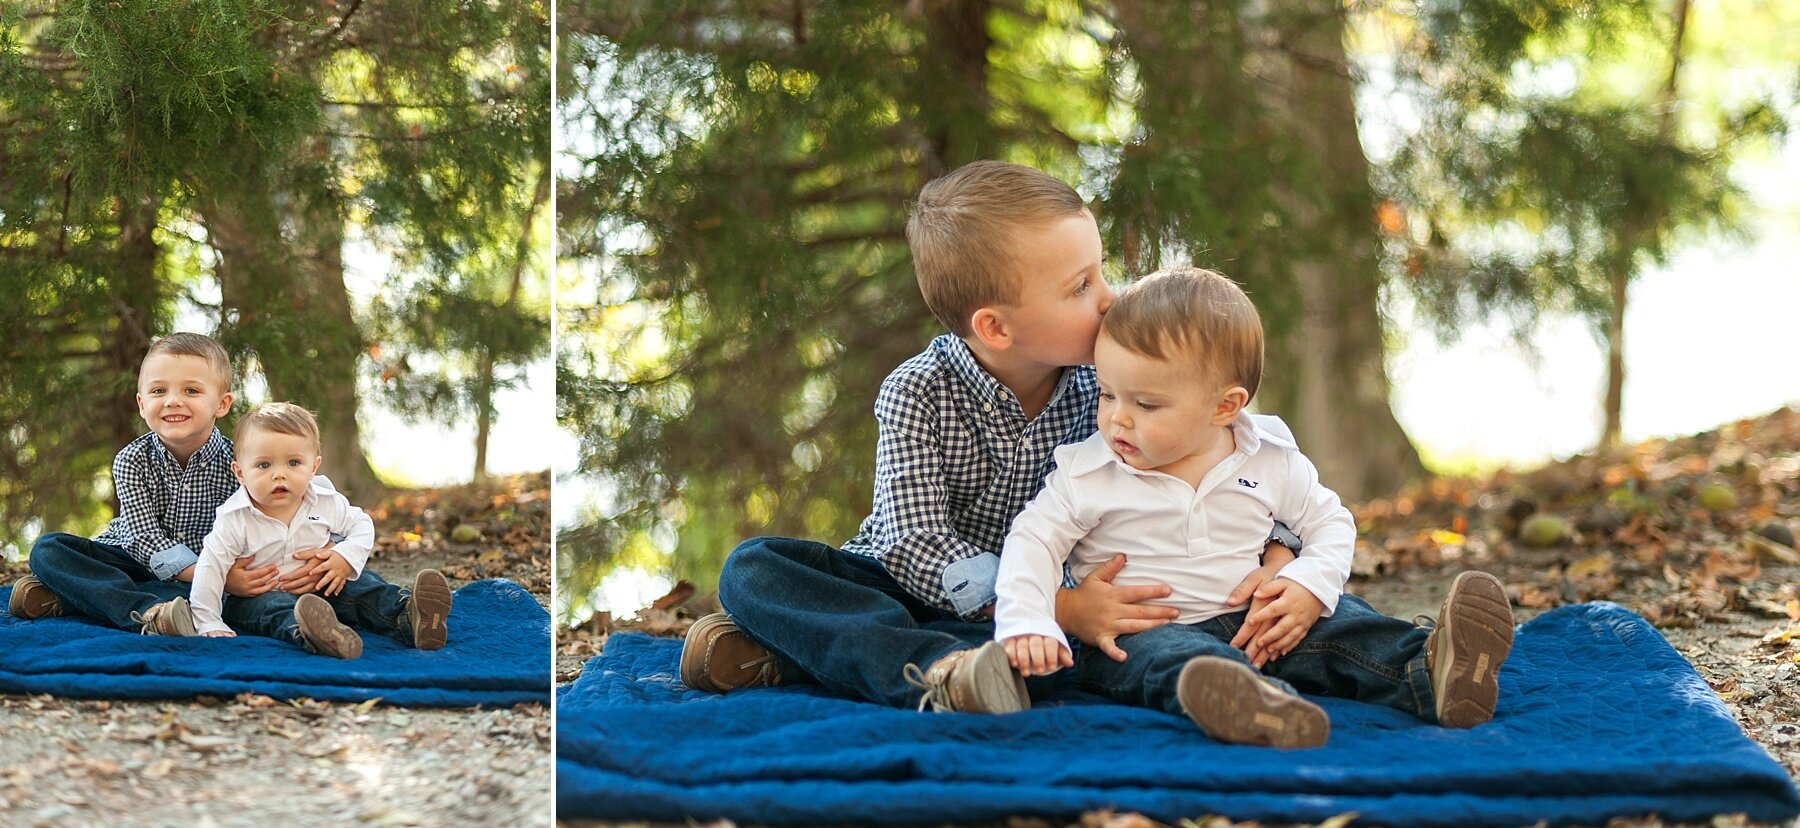 Wendy Zook Photography | Frederick MD Family photographer, Lake Linganore Family photographer, family photos in Maryland, Maryland family photographer, MD family photos, Lake Linganore